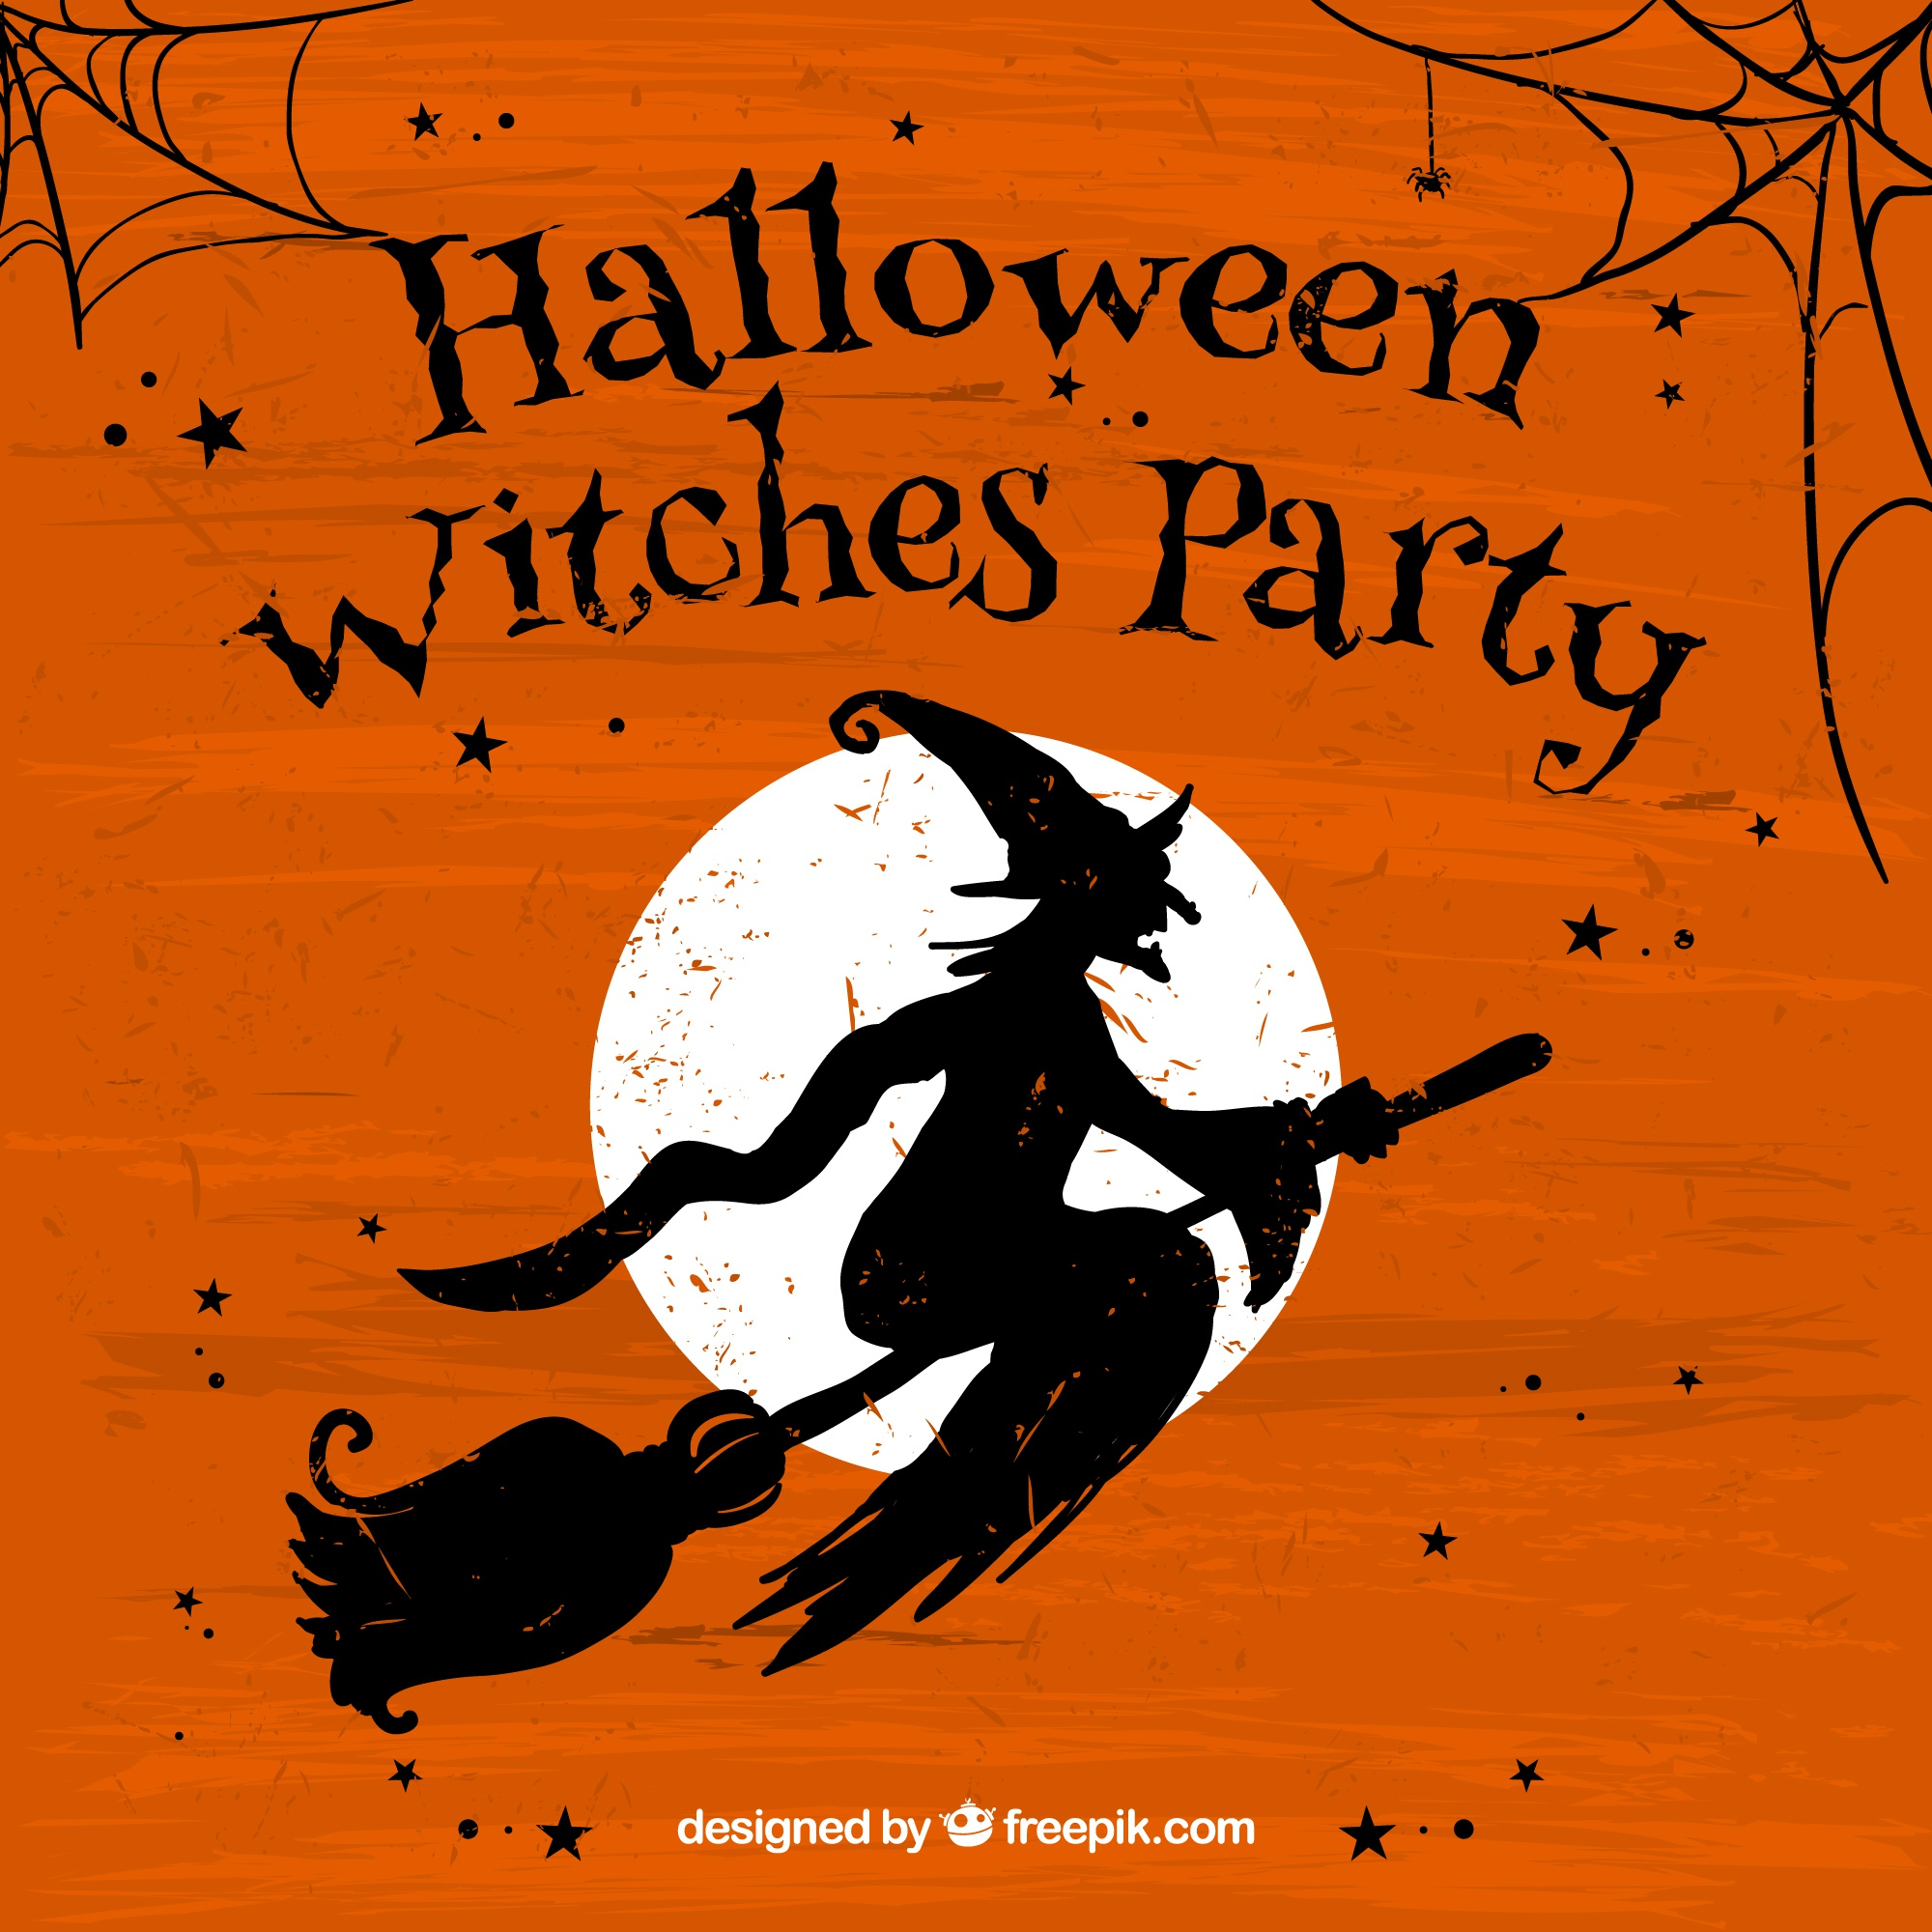 Grunge halloween withches party poster